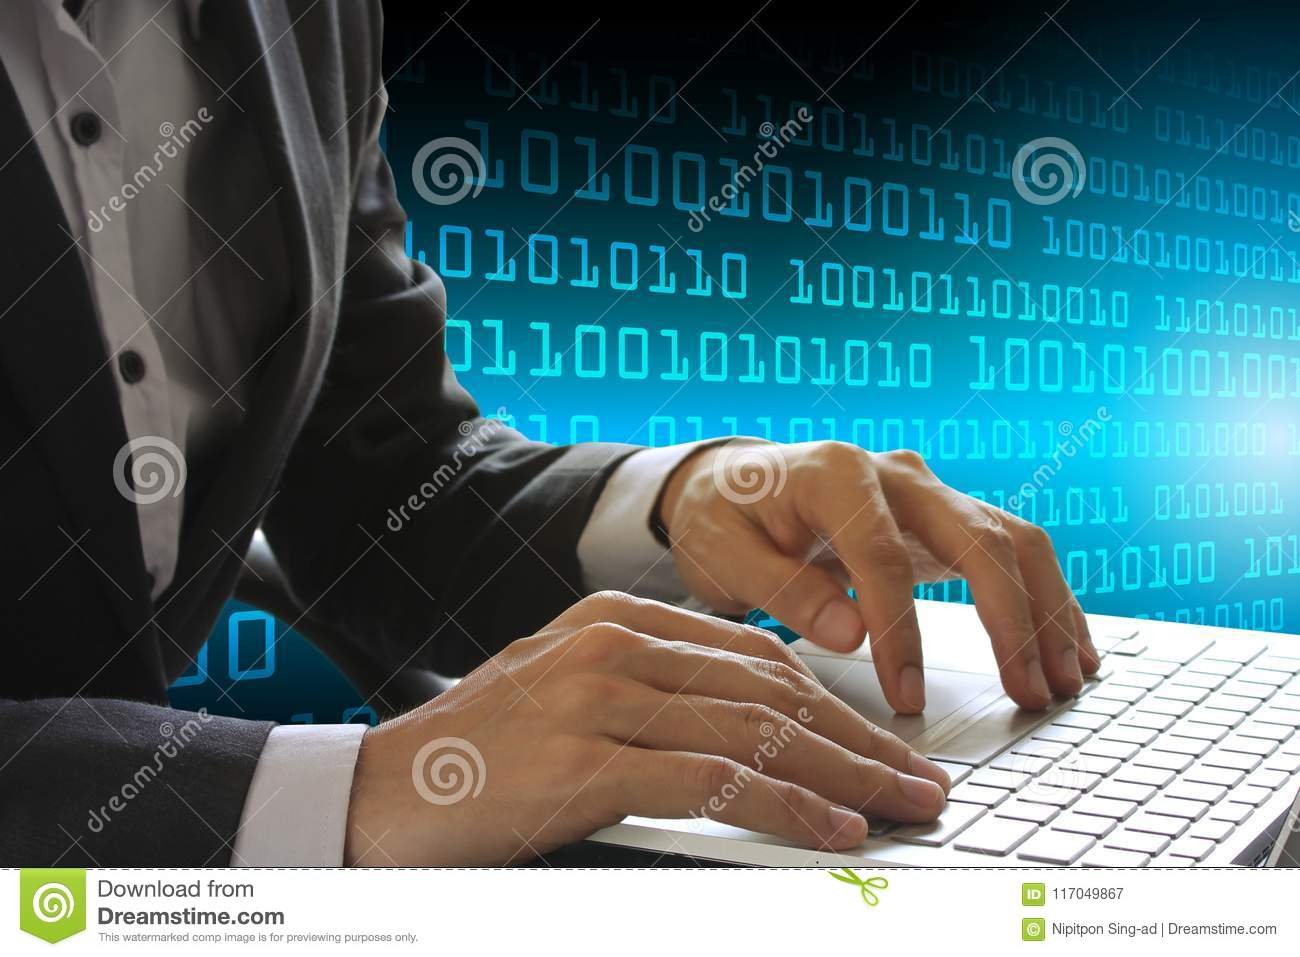 Cyber Security Data Protection Business Technology